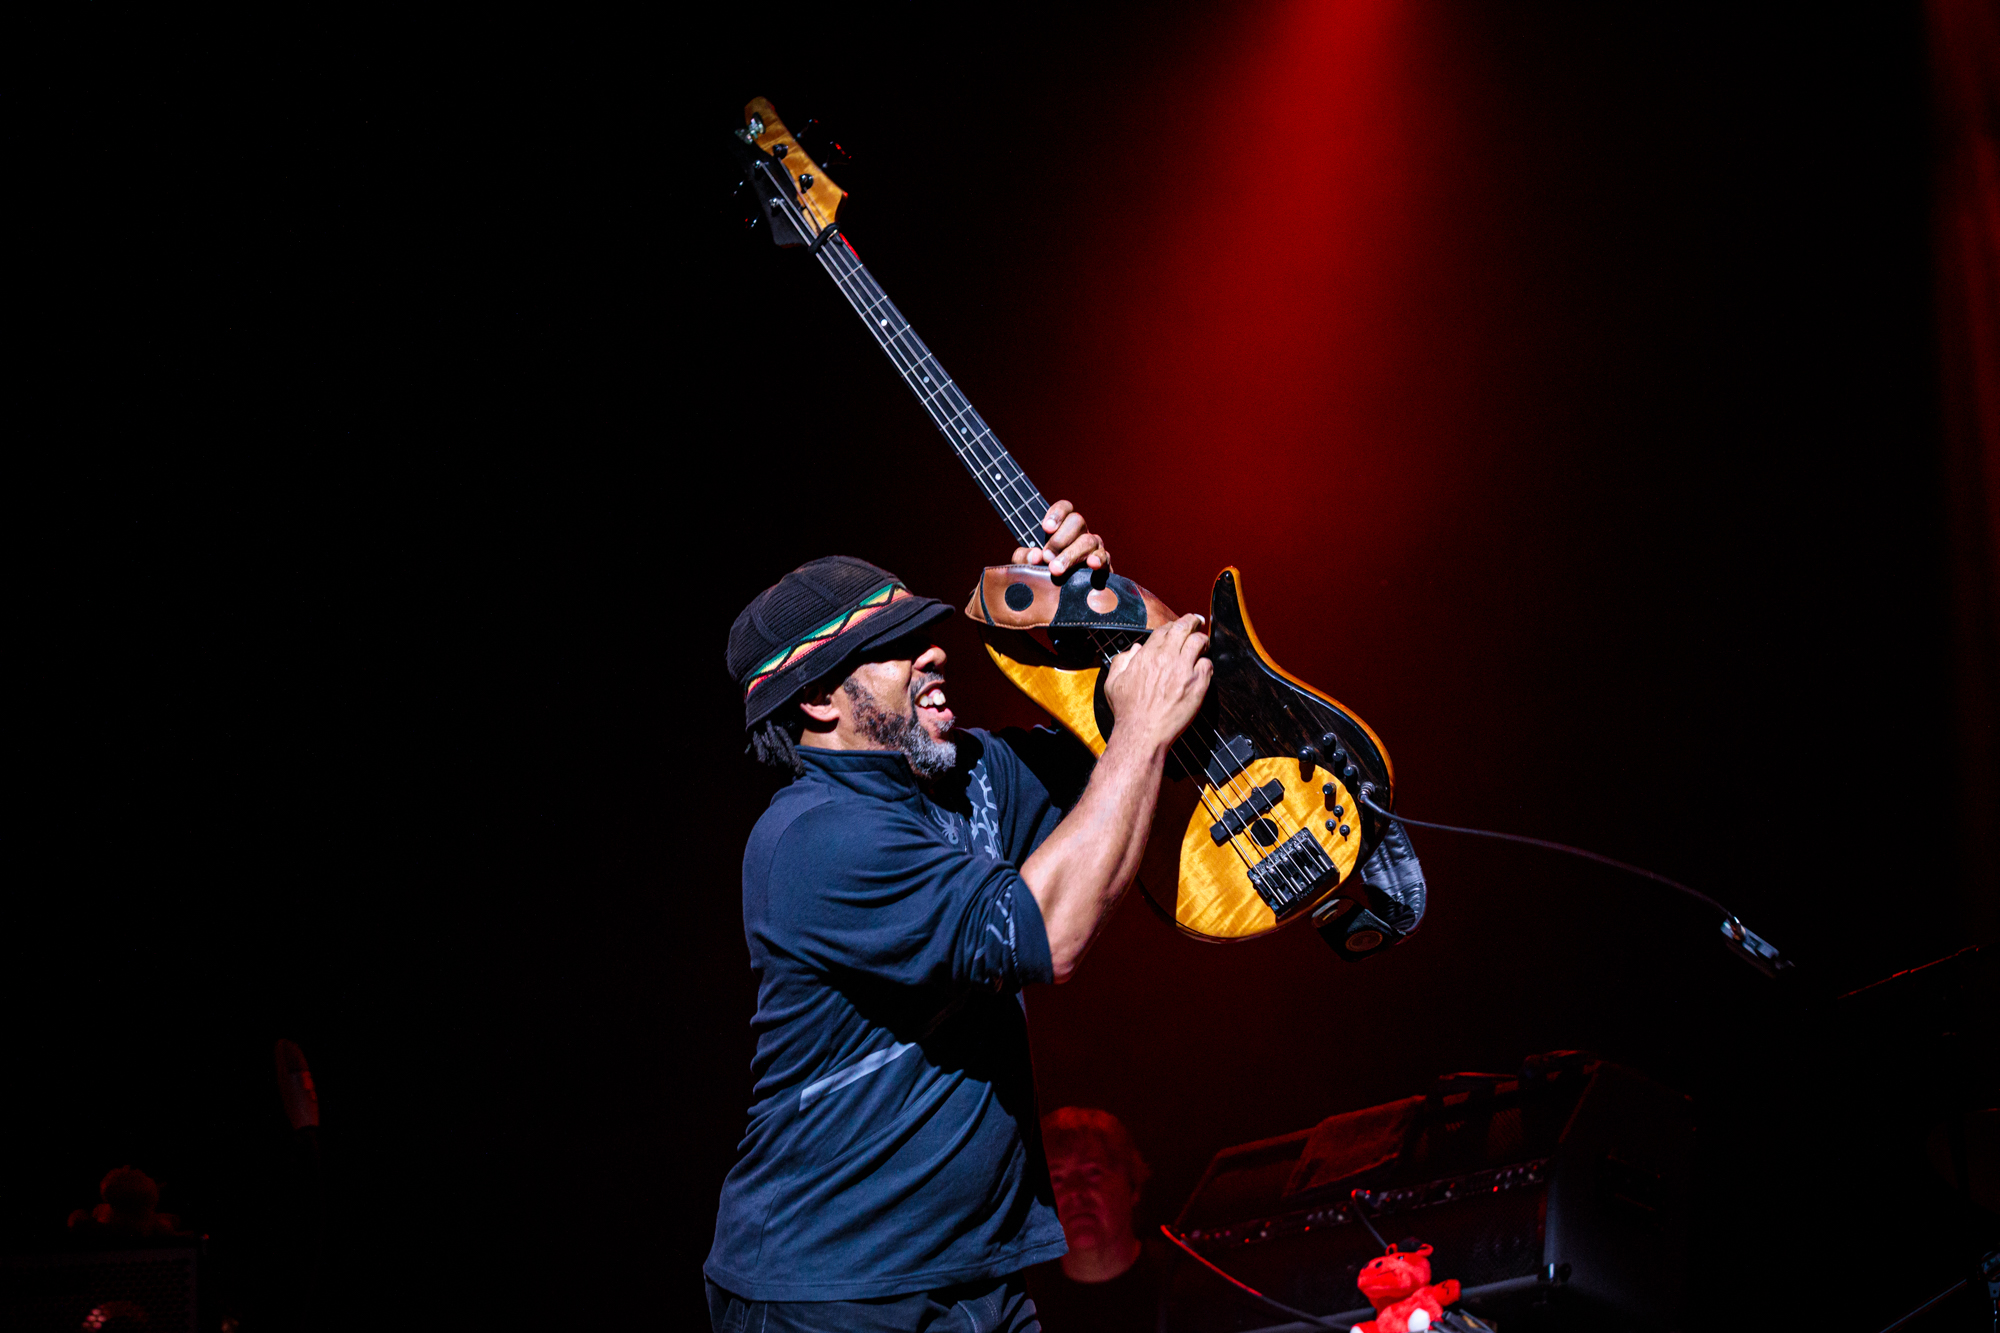 Victor Wooten flipping his bass on December 4, 2019